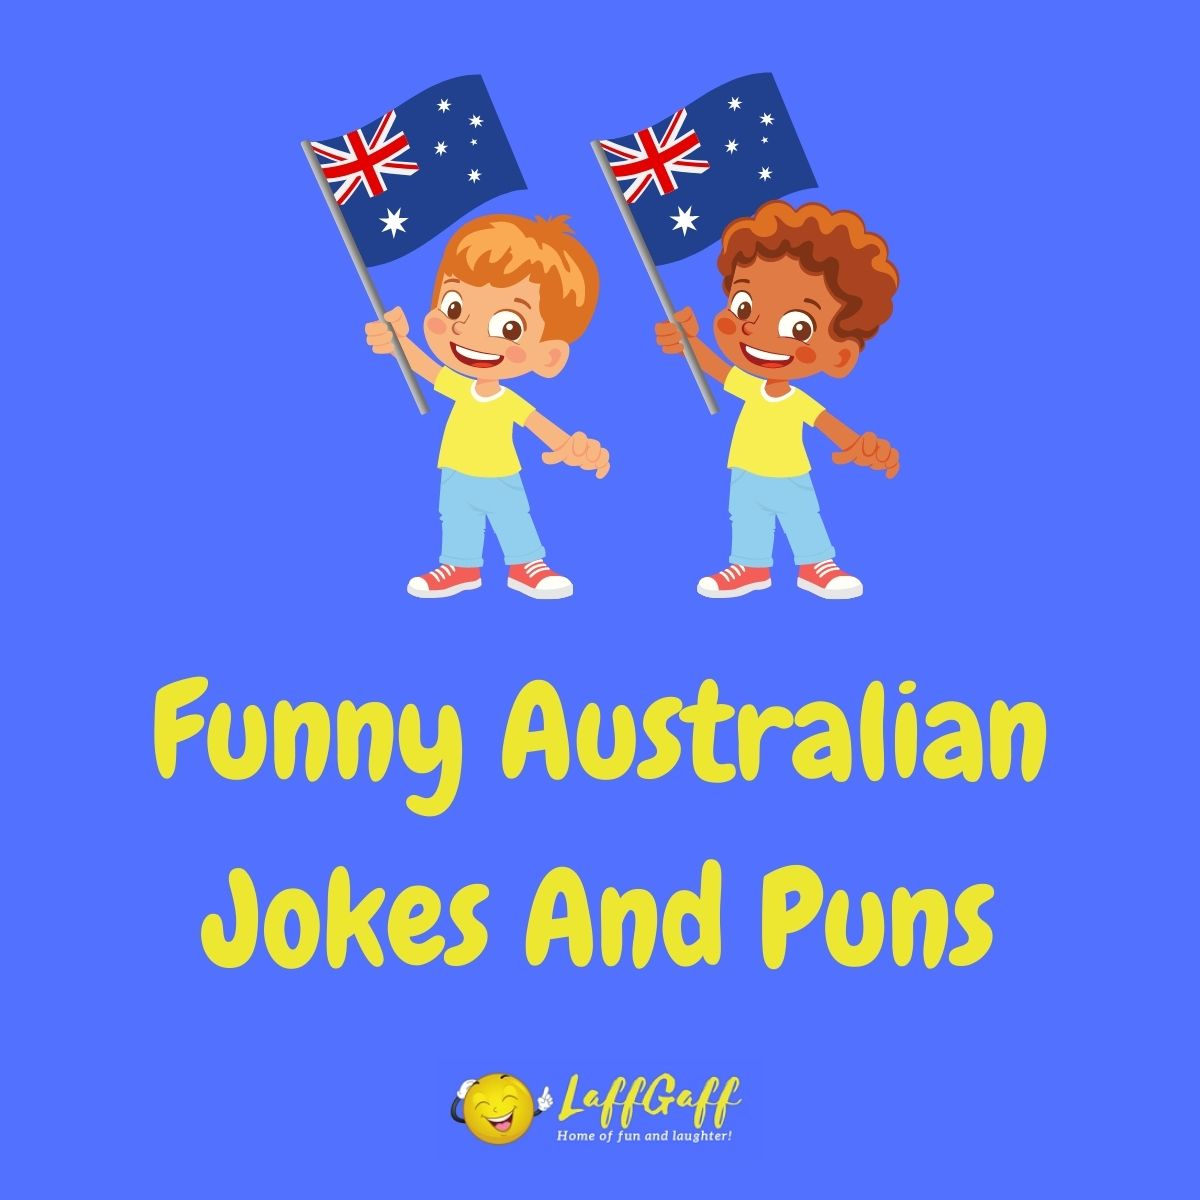 Featured image for a page of funny Australian jokes and puns.